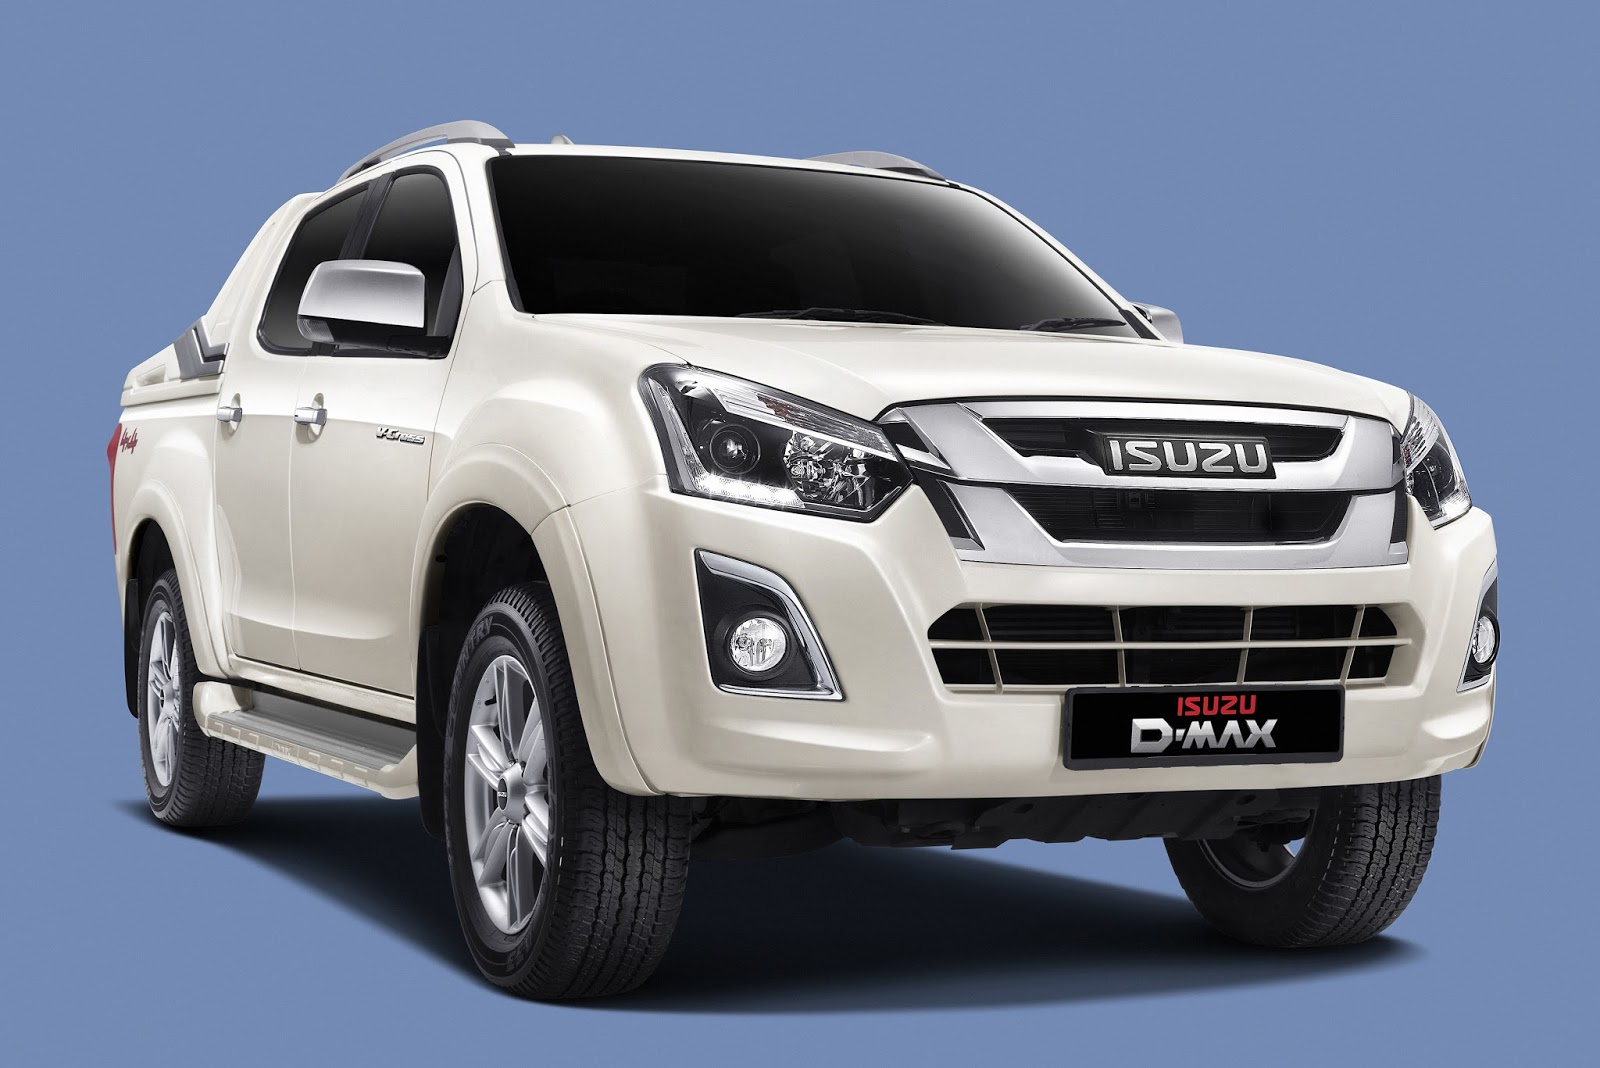 isuzu d max 4x4 klang valley. Black Bedroom Furniture Sets. Home Design Ideas